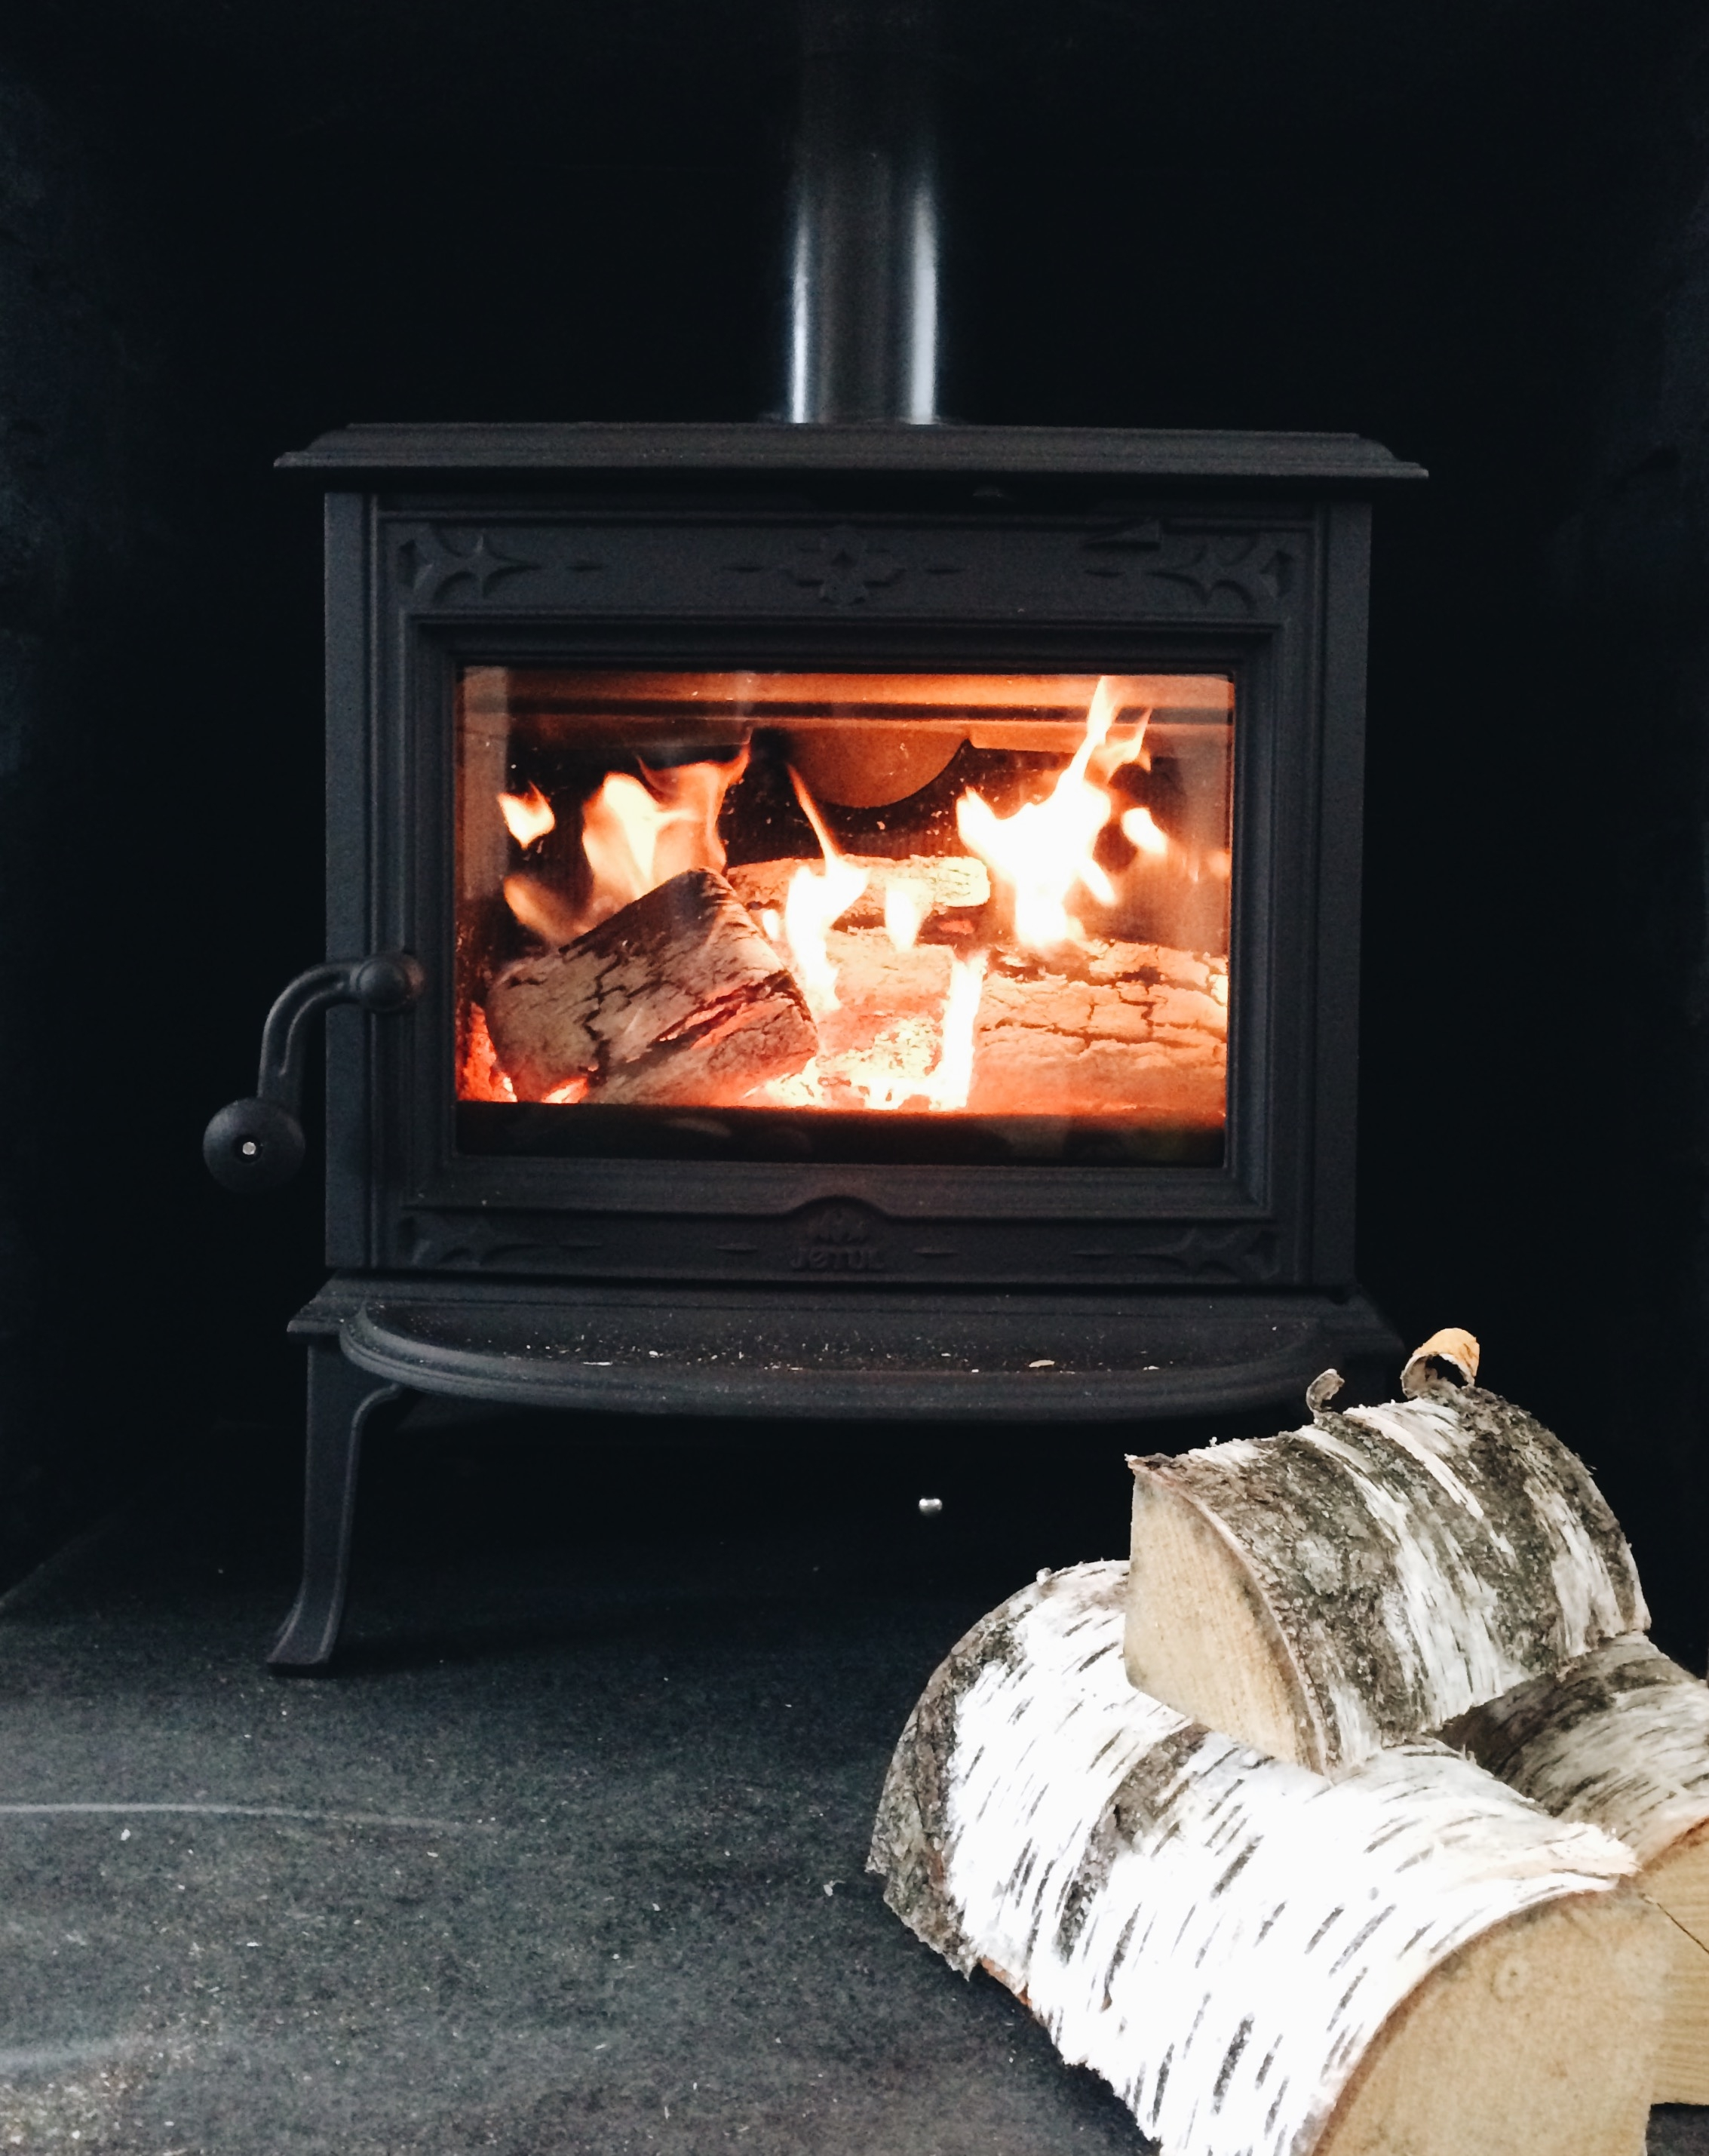 fat-creative-wood-burning-stove-installation-5-steps-guide-3.JPG